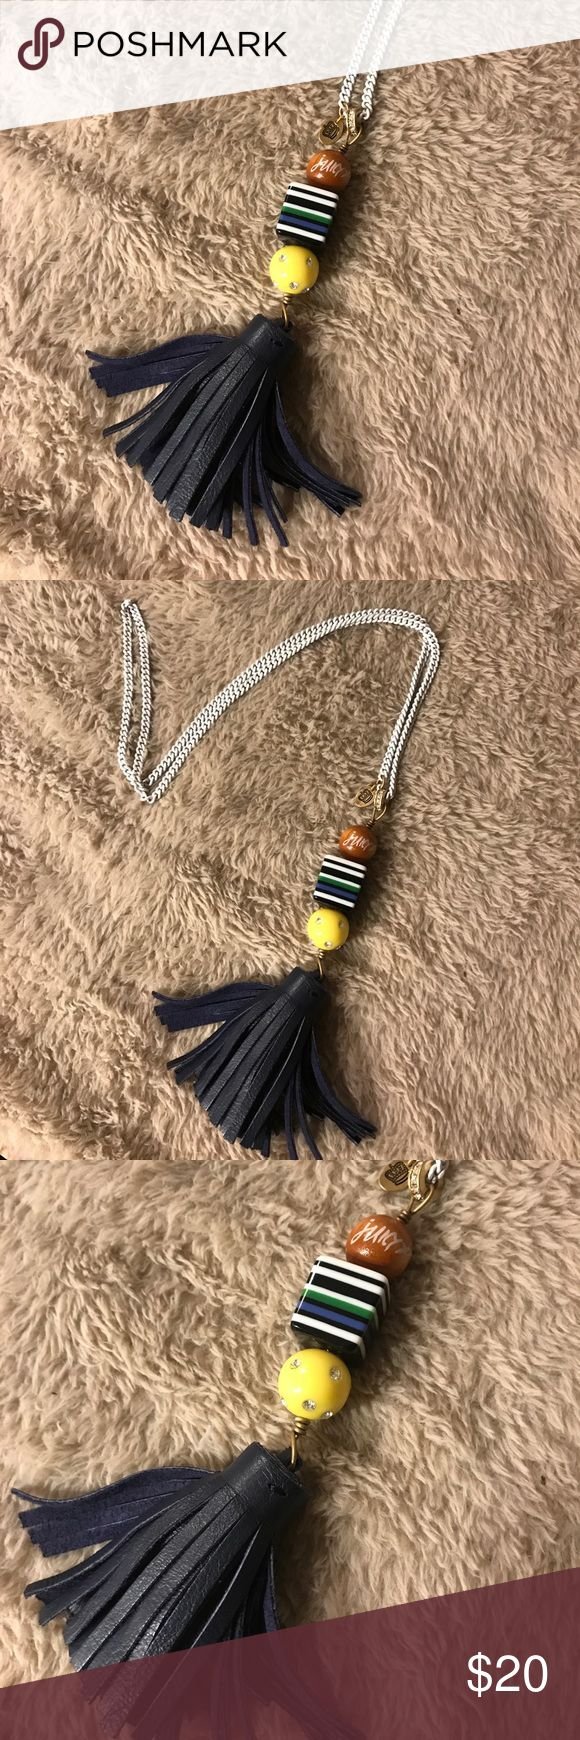 Long juicy couture necklace with leather tassel Long juicy couture necklace with navy blue leather tassel. Juicy Couture Jewelry Bracelets